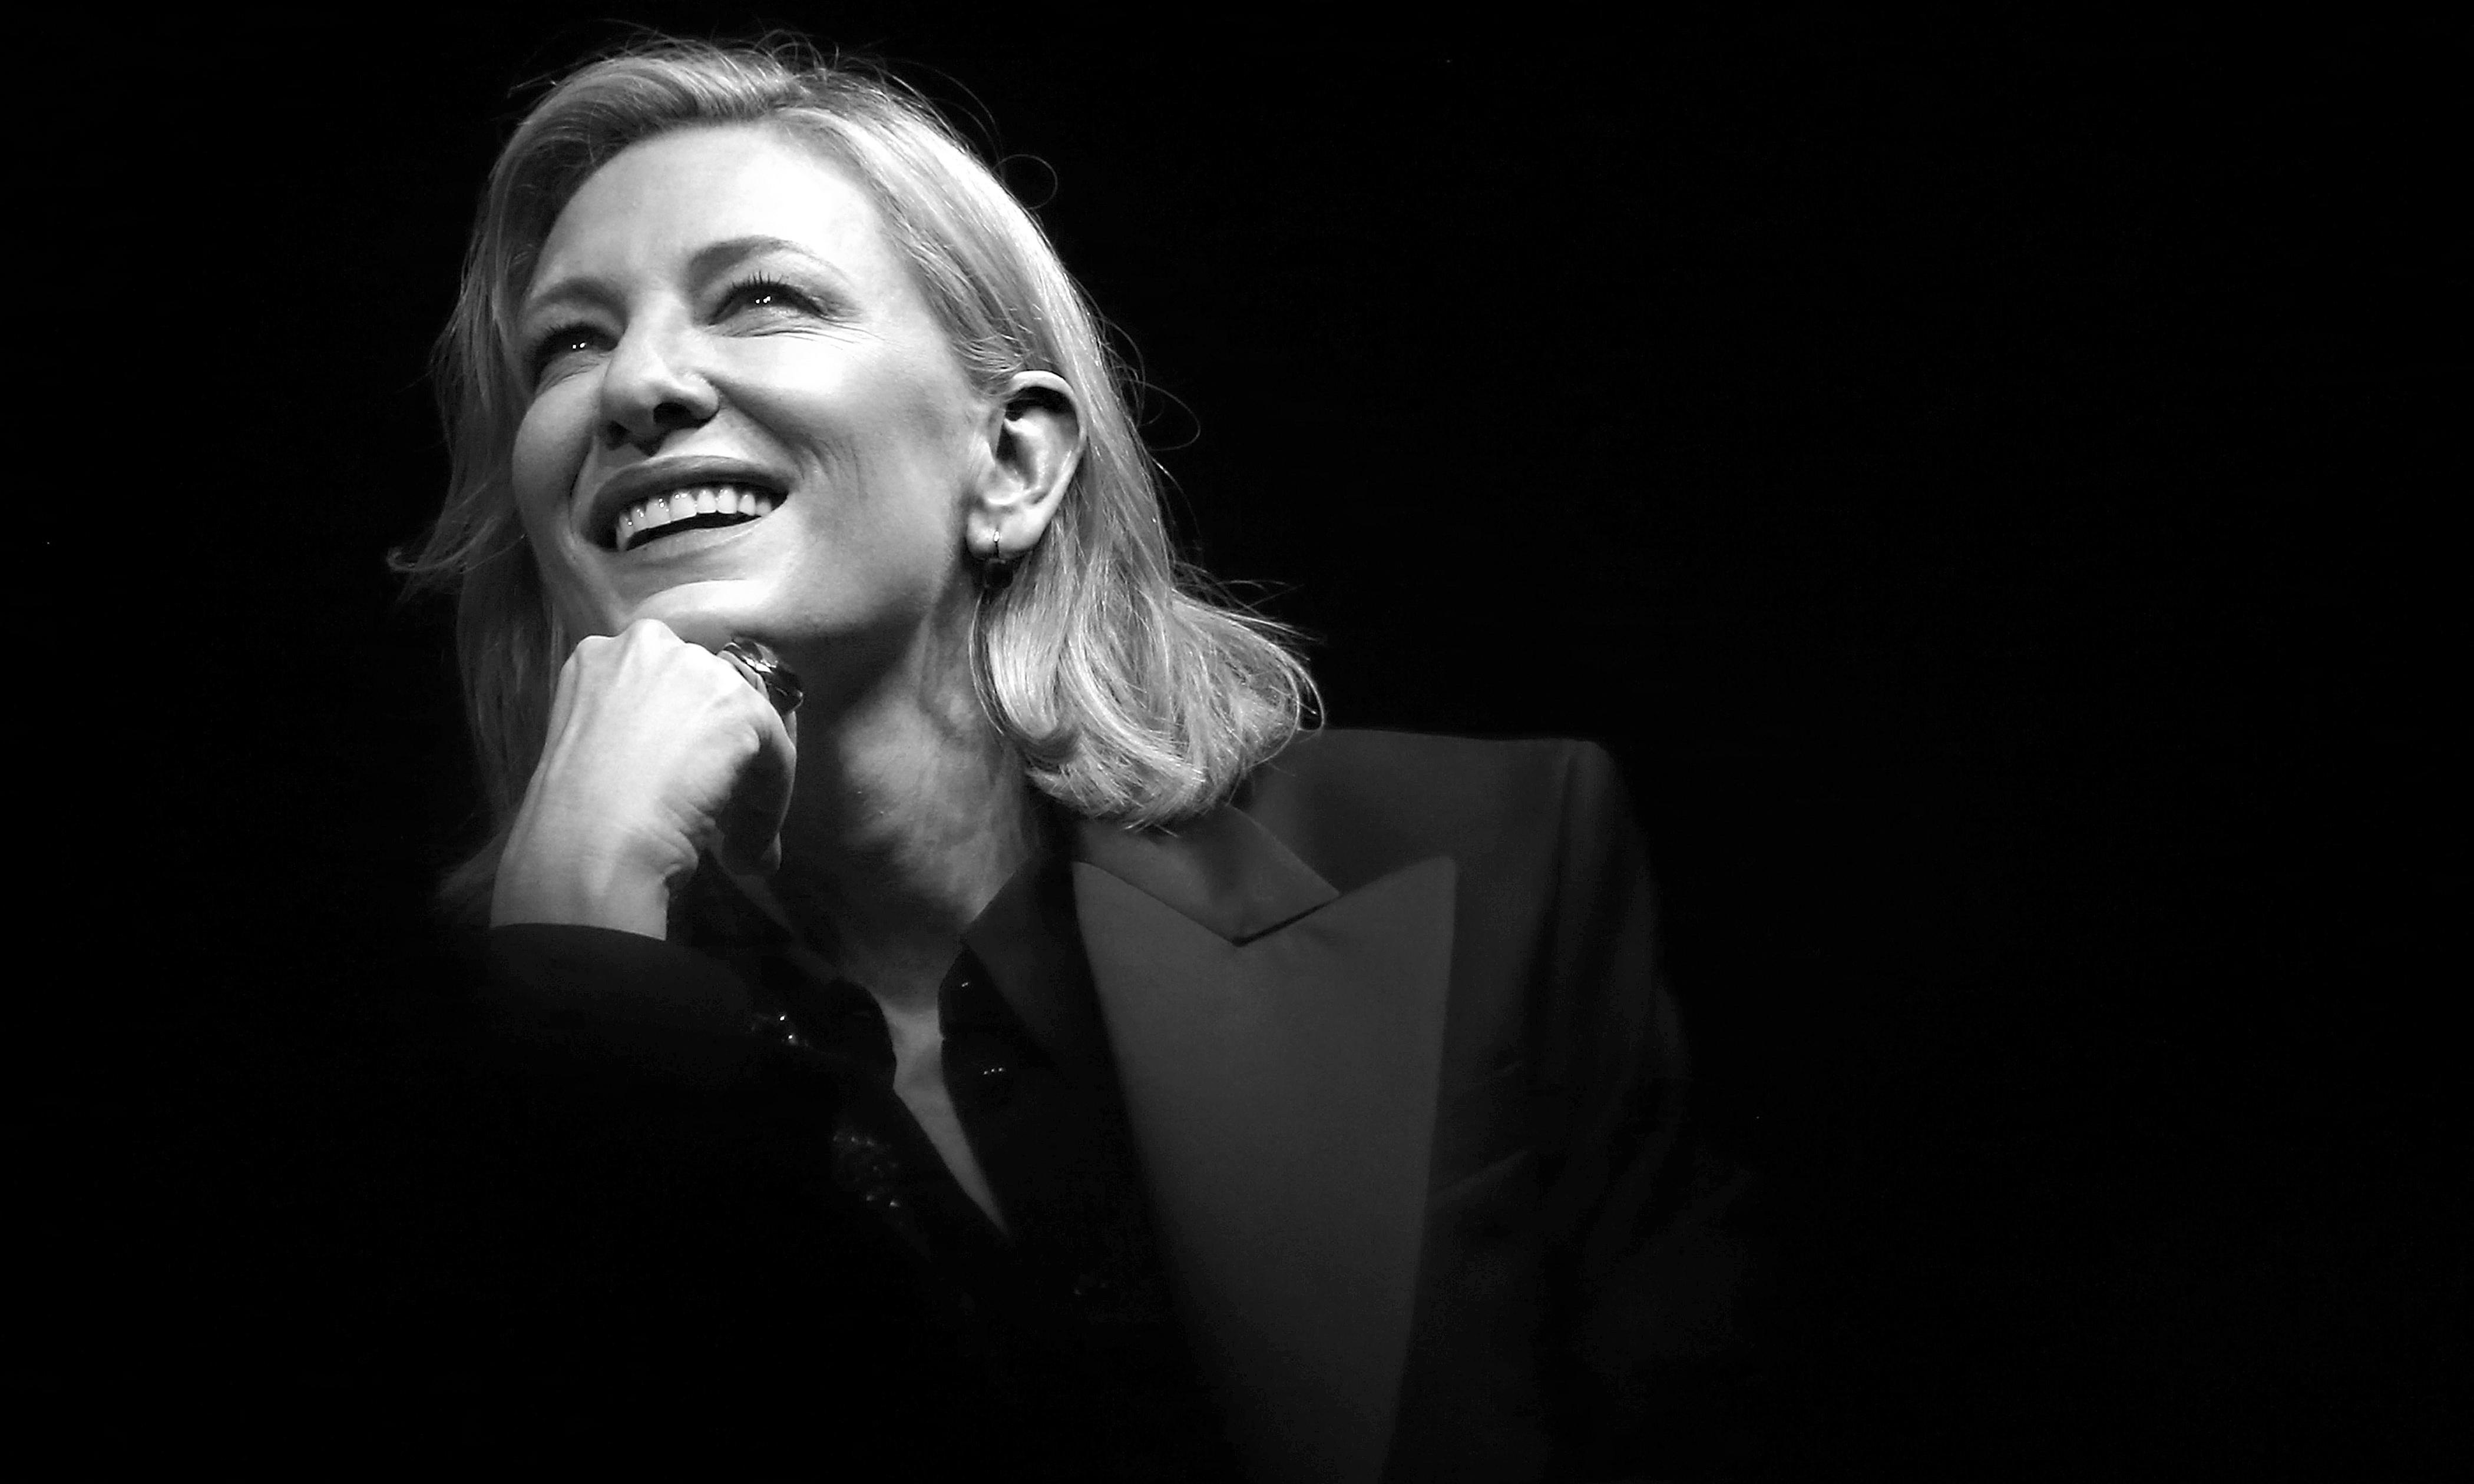 Cate Blanchett takes a straight-talking approach to a complicated issue